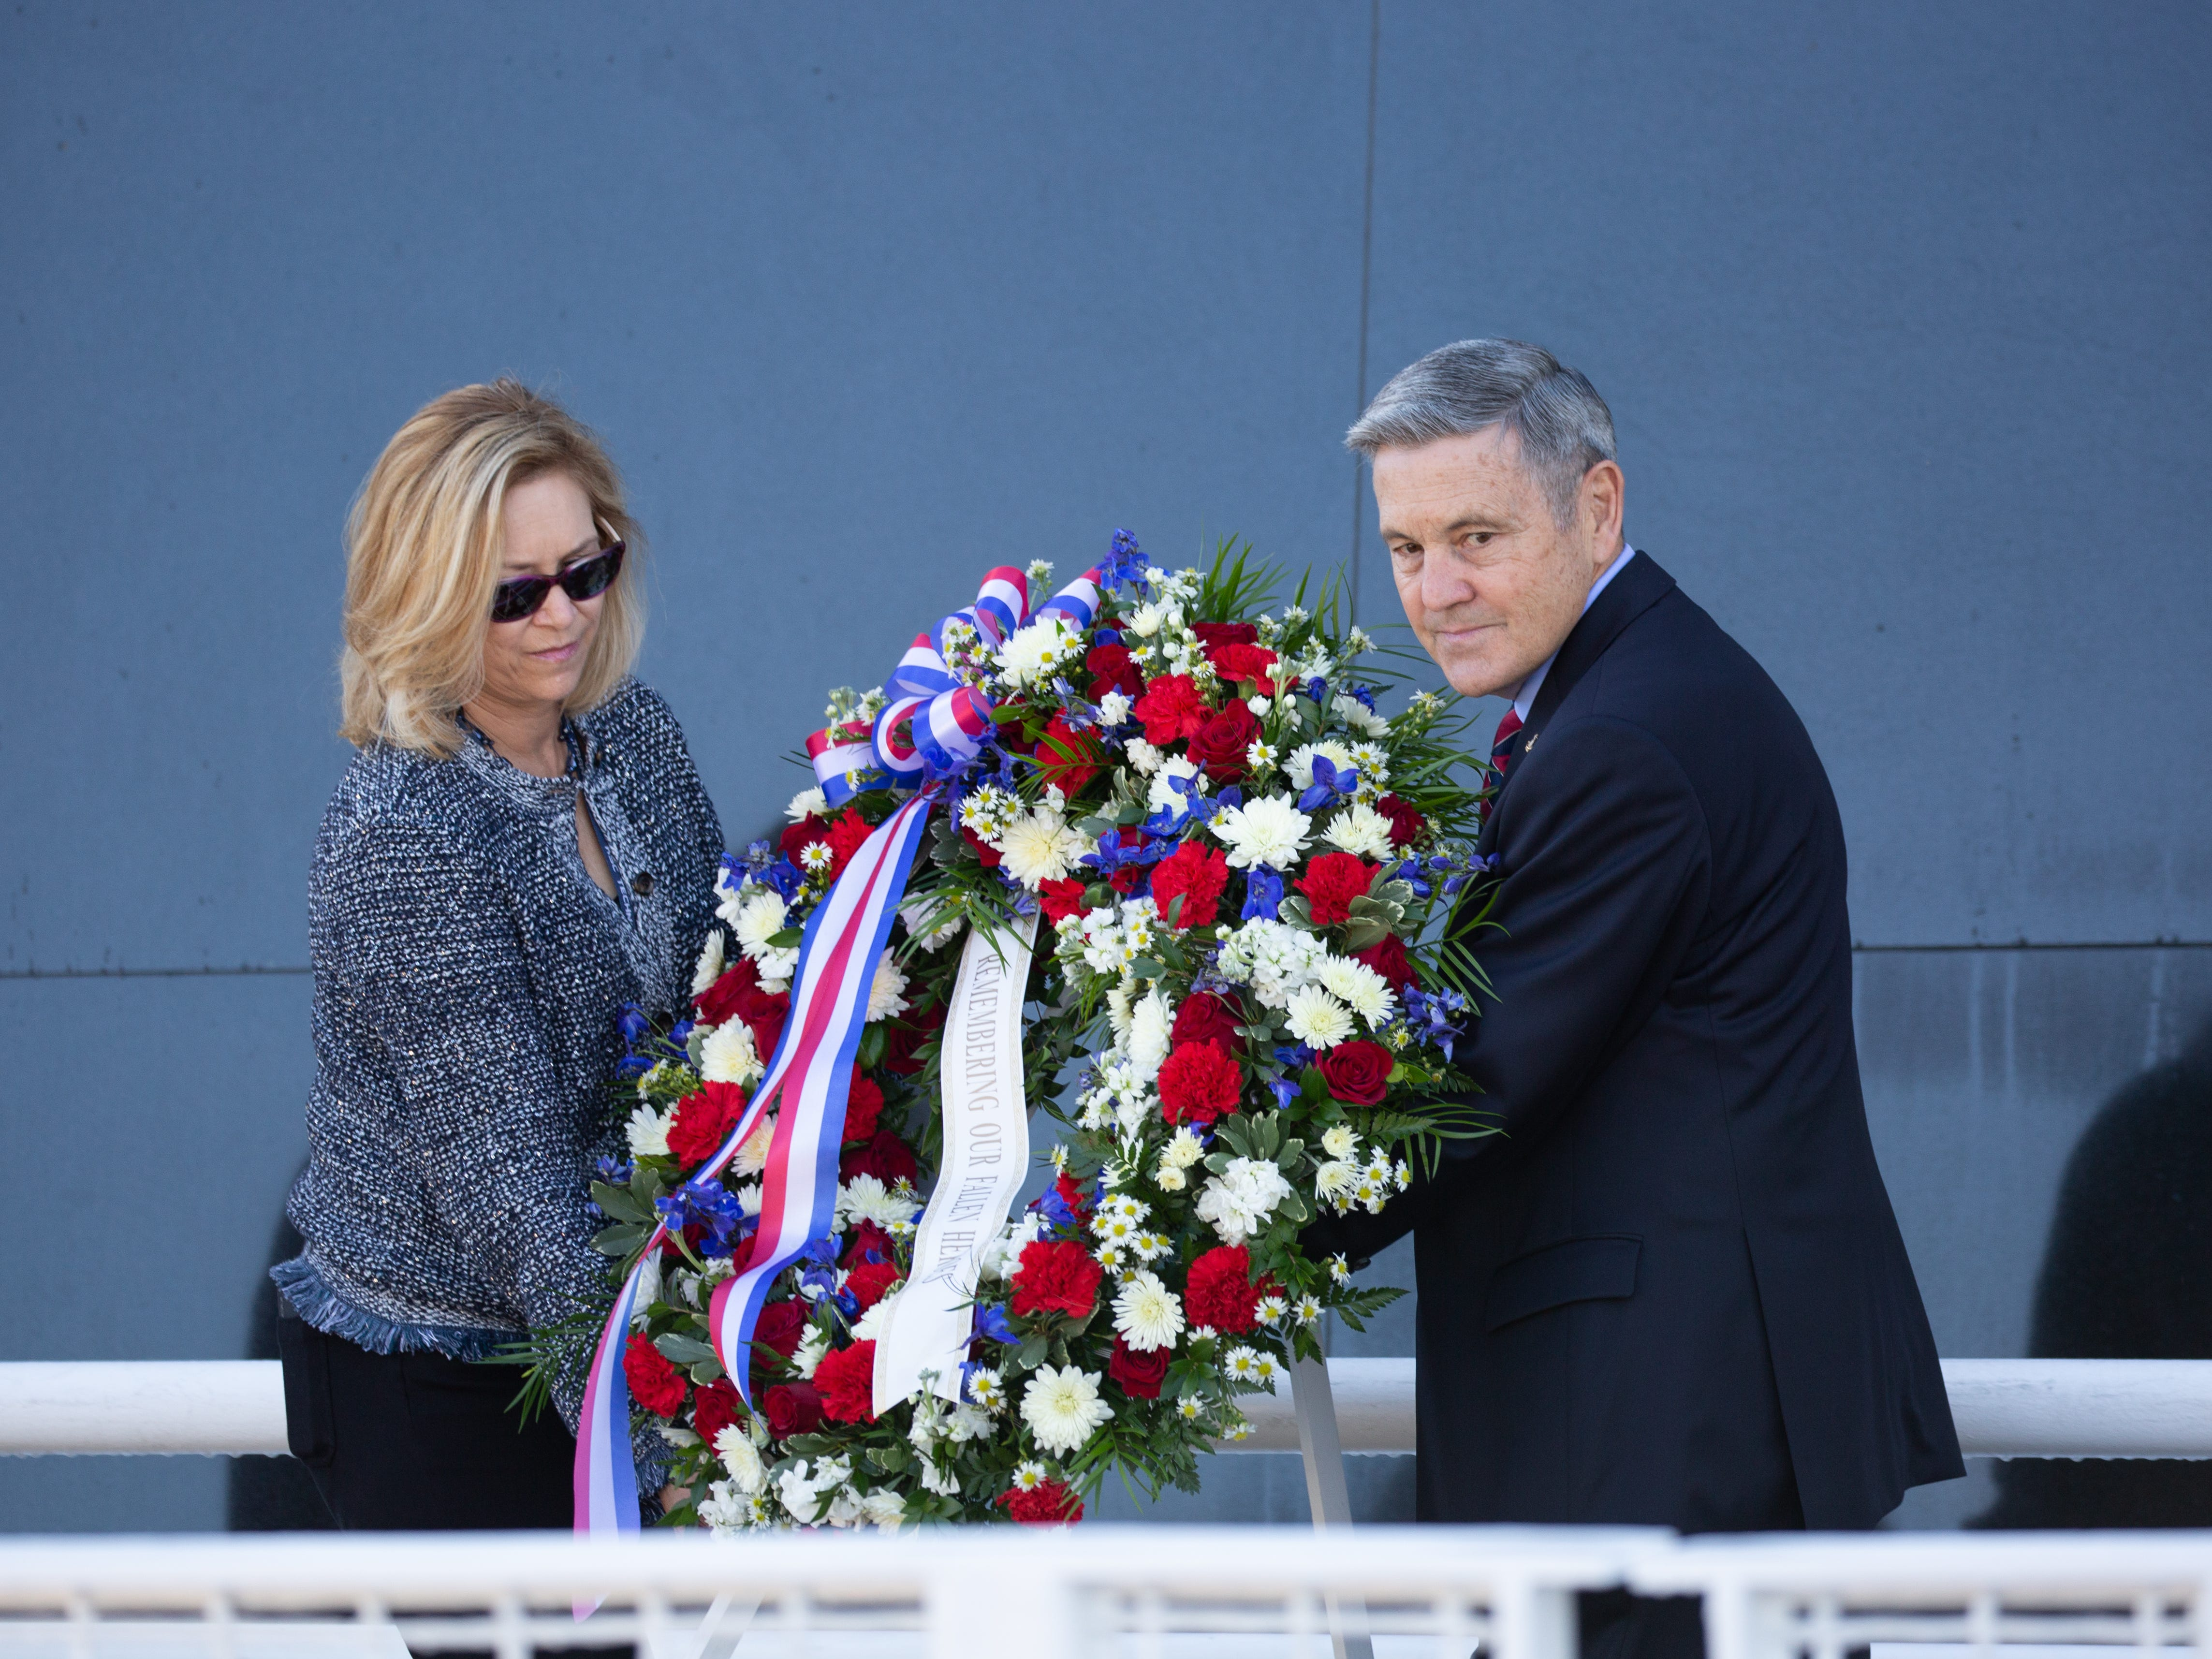 Kennedy Space Center Director Bob Cabana and Deputy Director Janet Petro move the wreath for fallen astronauts to the Space Mirror Memorial for NASA's Day of Remembrance on Thursday, Feb. 7, 2019.